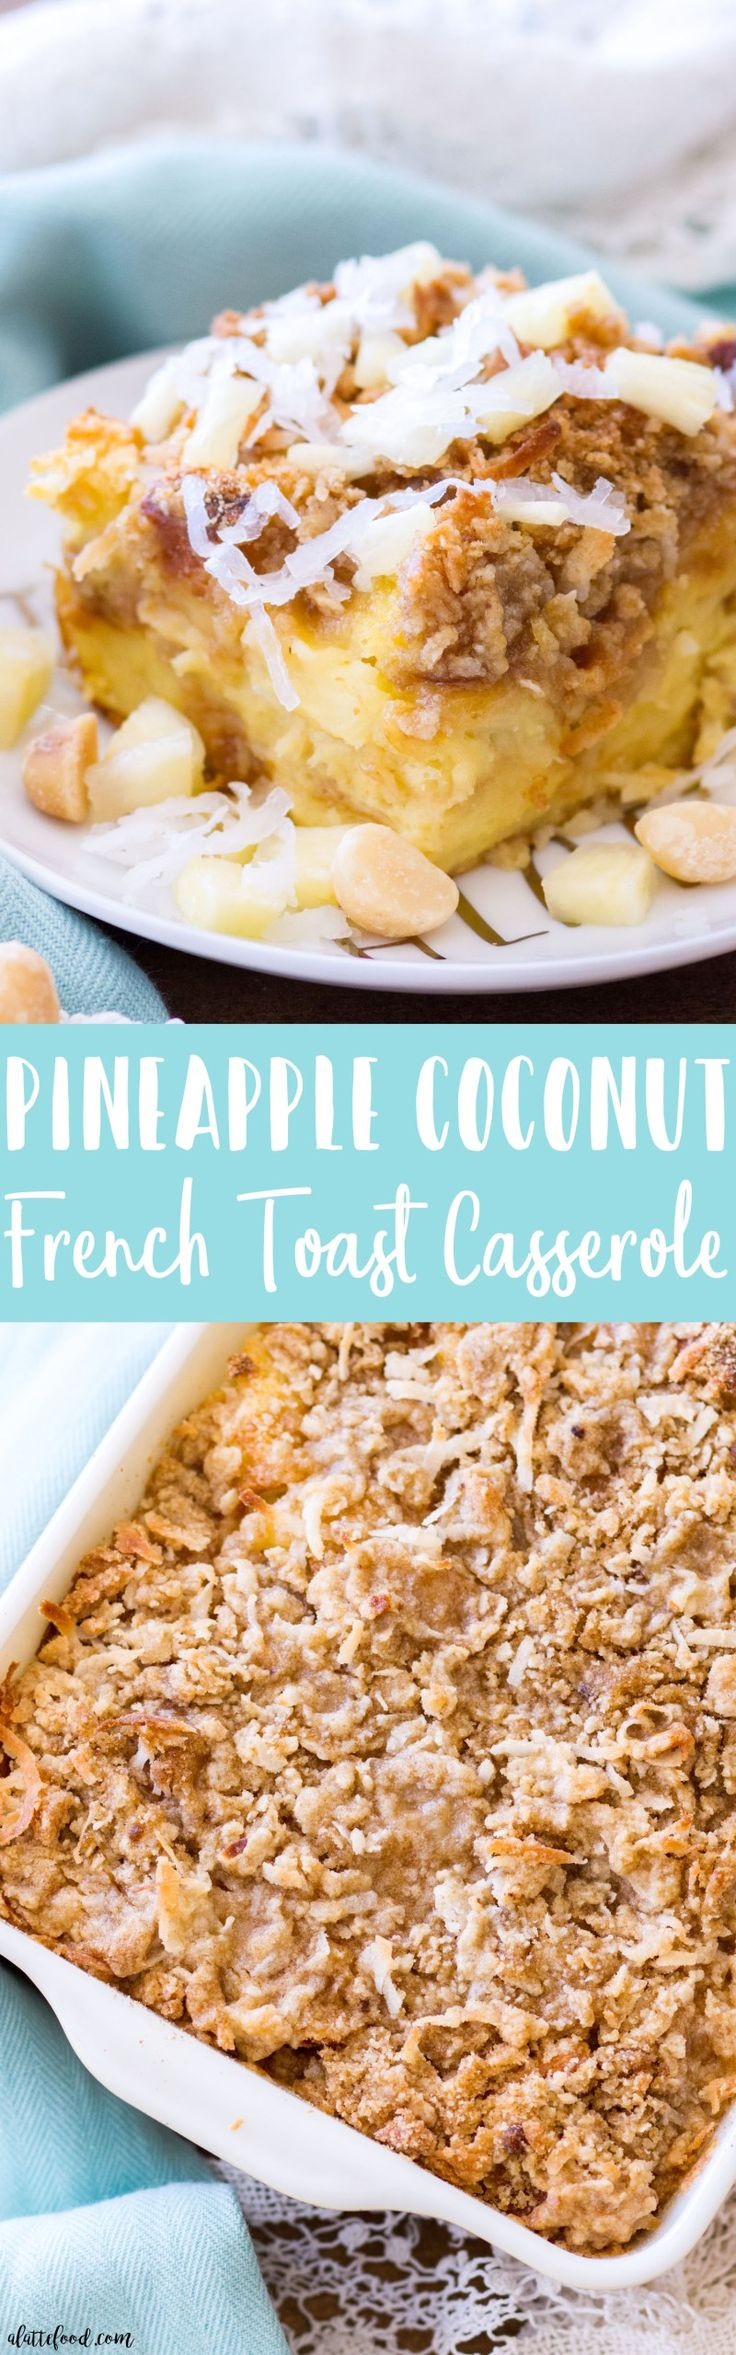 This tropical Pineapple Coconut French Toast Casserole is made with King's Hawaiian Sweet Rolls, Del Monte Pineapple, Coconut, and Mauna Loa Macadamia Nuts! It's an easy French Toast Casserole recipe that is full of sweet tropical flavor, perfect for breakfast or brunch! #ad #HawaiianFoodsWeek http://www.alattefood.com/pineapple-coconut-french-toast-casserole/ @kingshawaiian